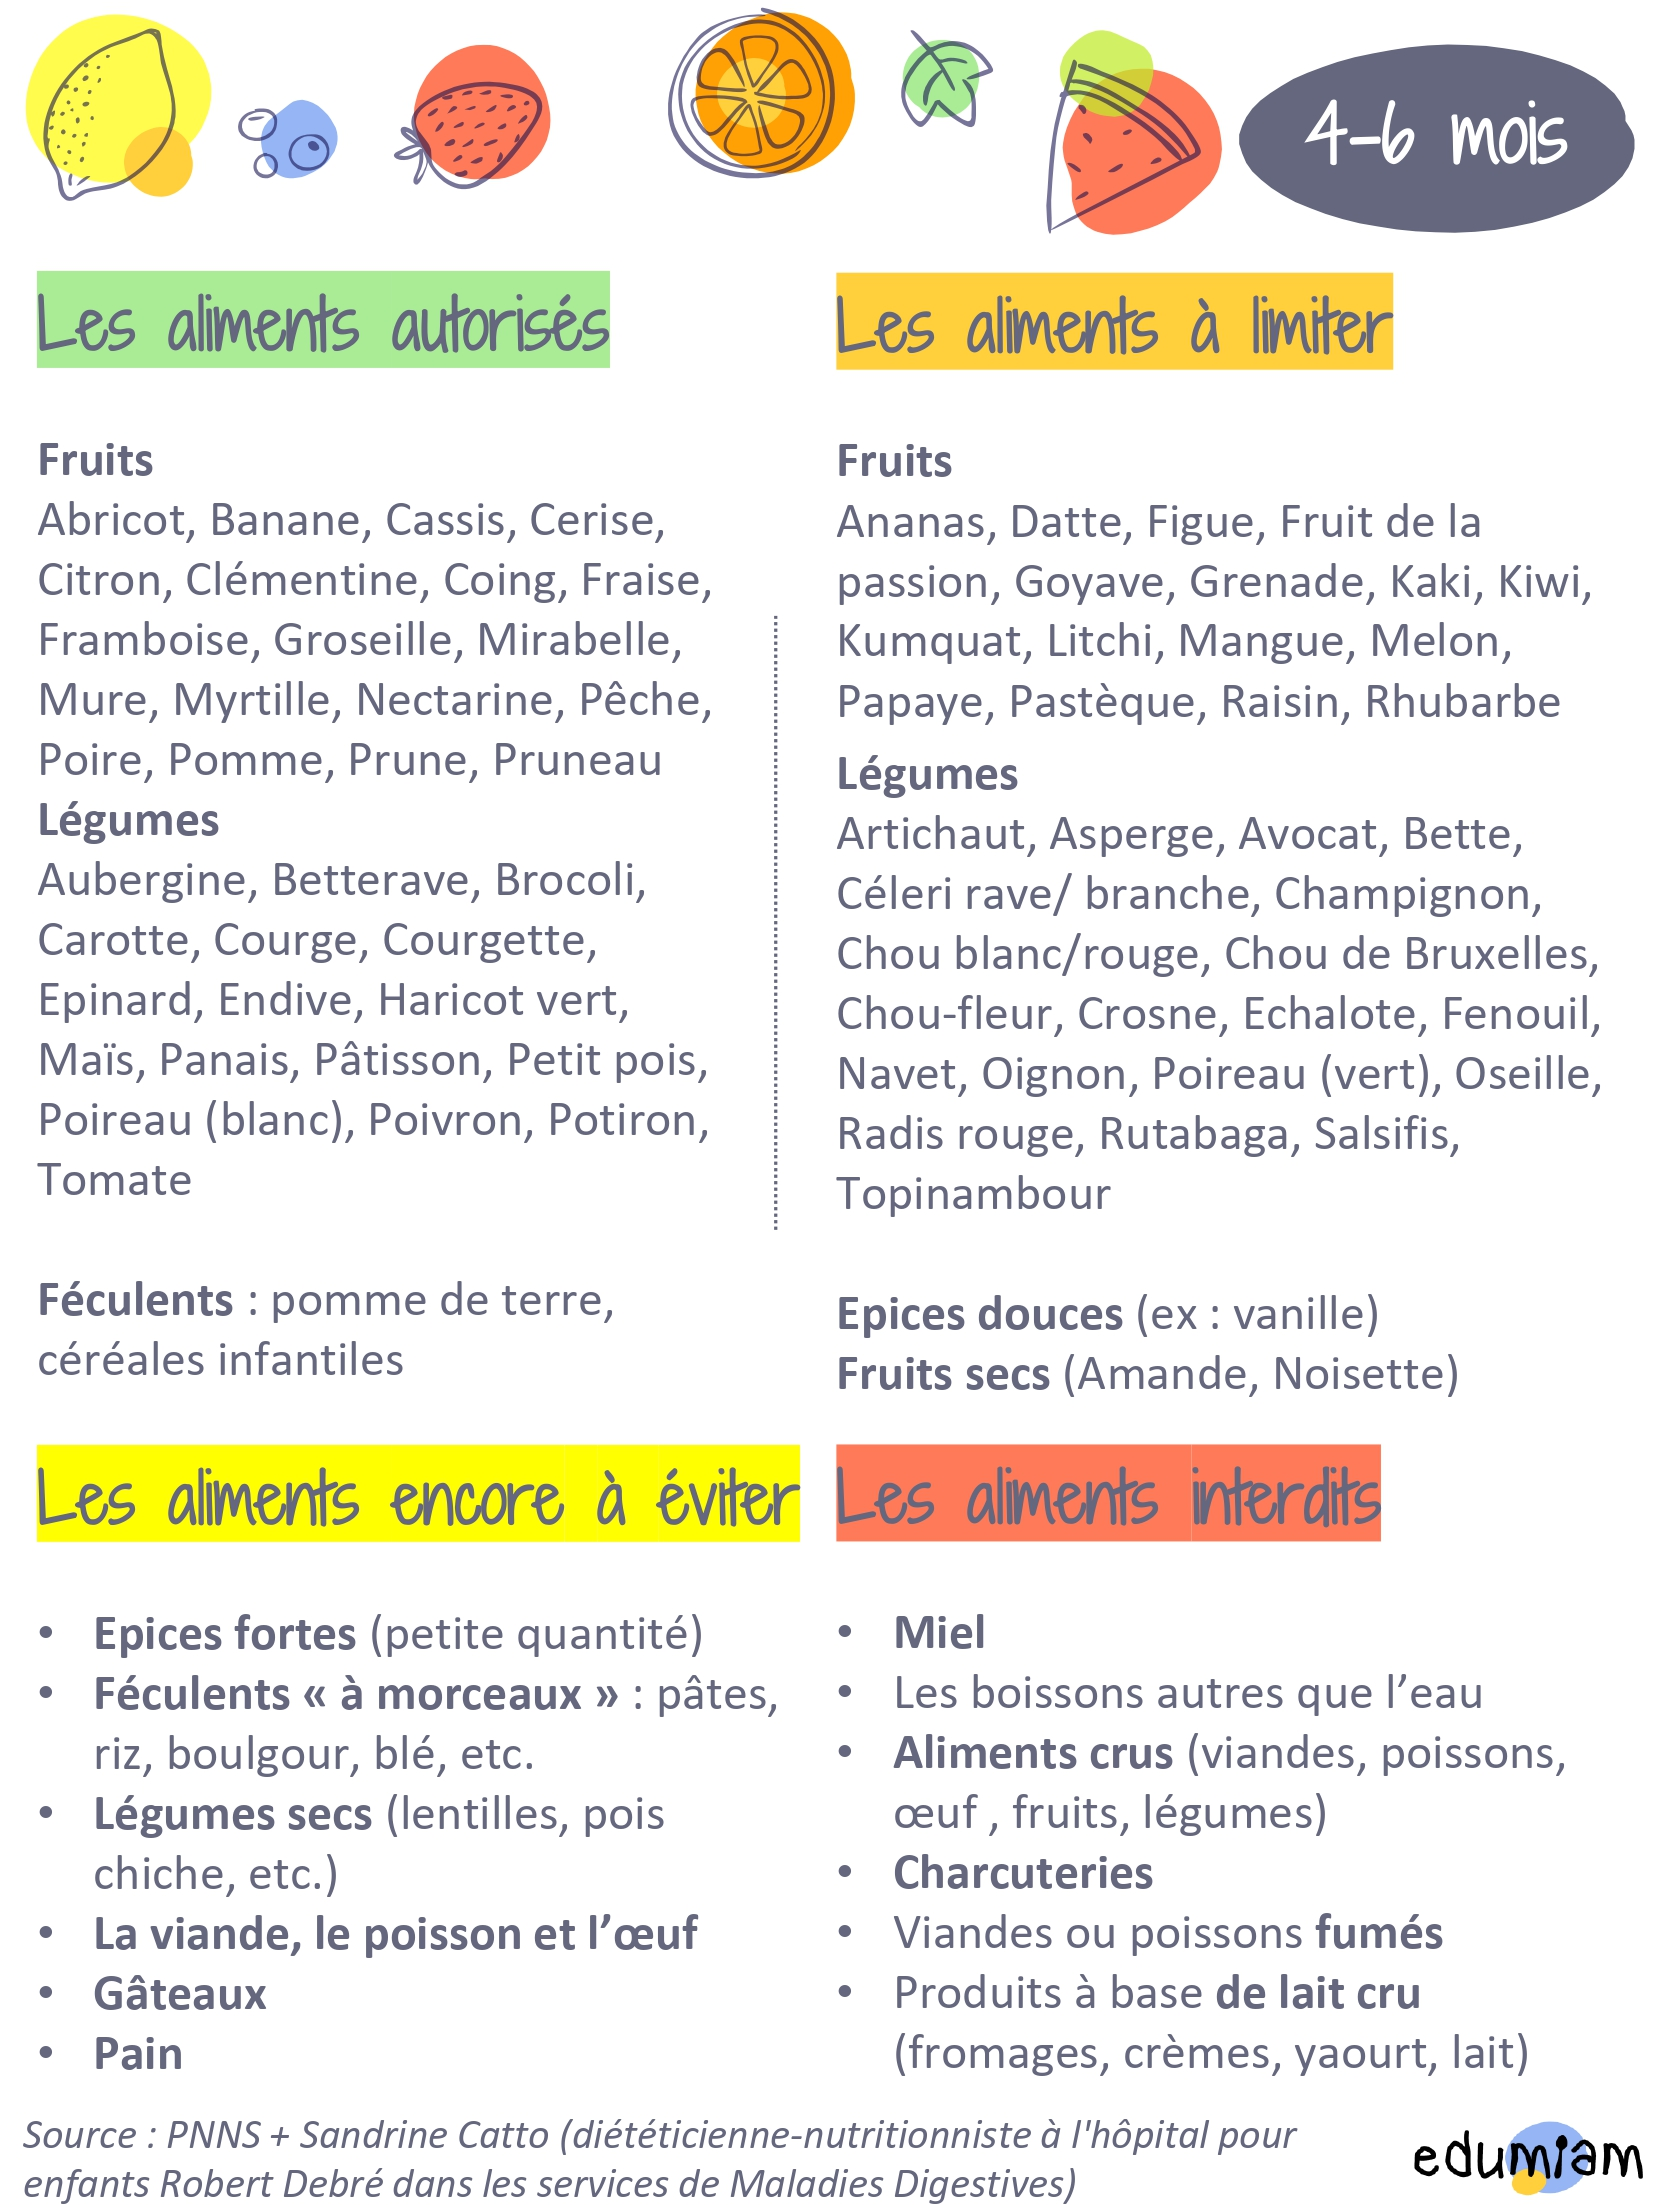 Guide pratique alimentation 0-3 ans_pages-to-jpg-0006.jpg